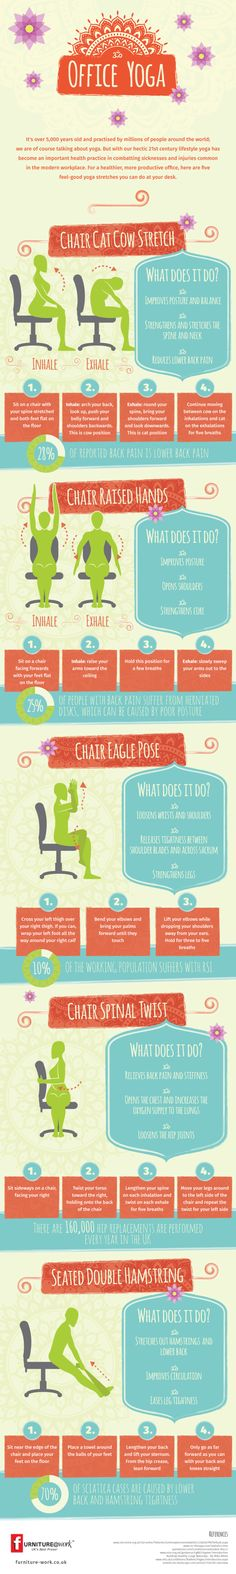 #OfficeYoga: Lazy Chair Pose? No soar like a Seated Eagle  Youll have noticed…